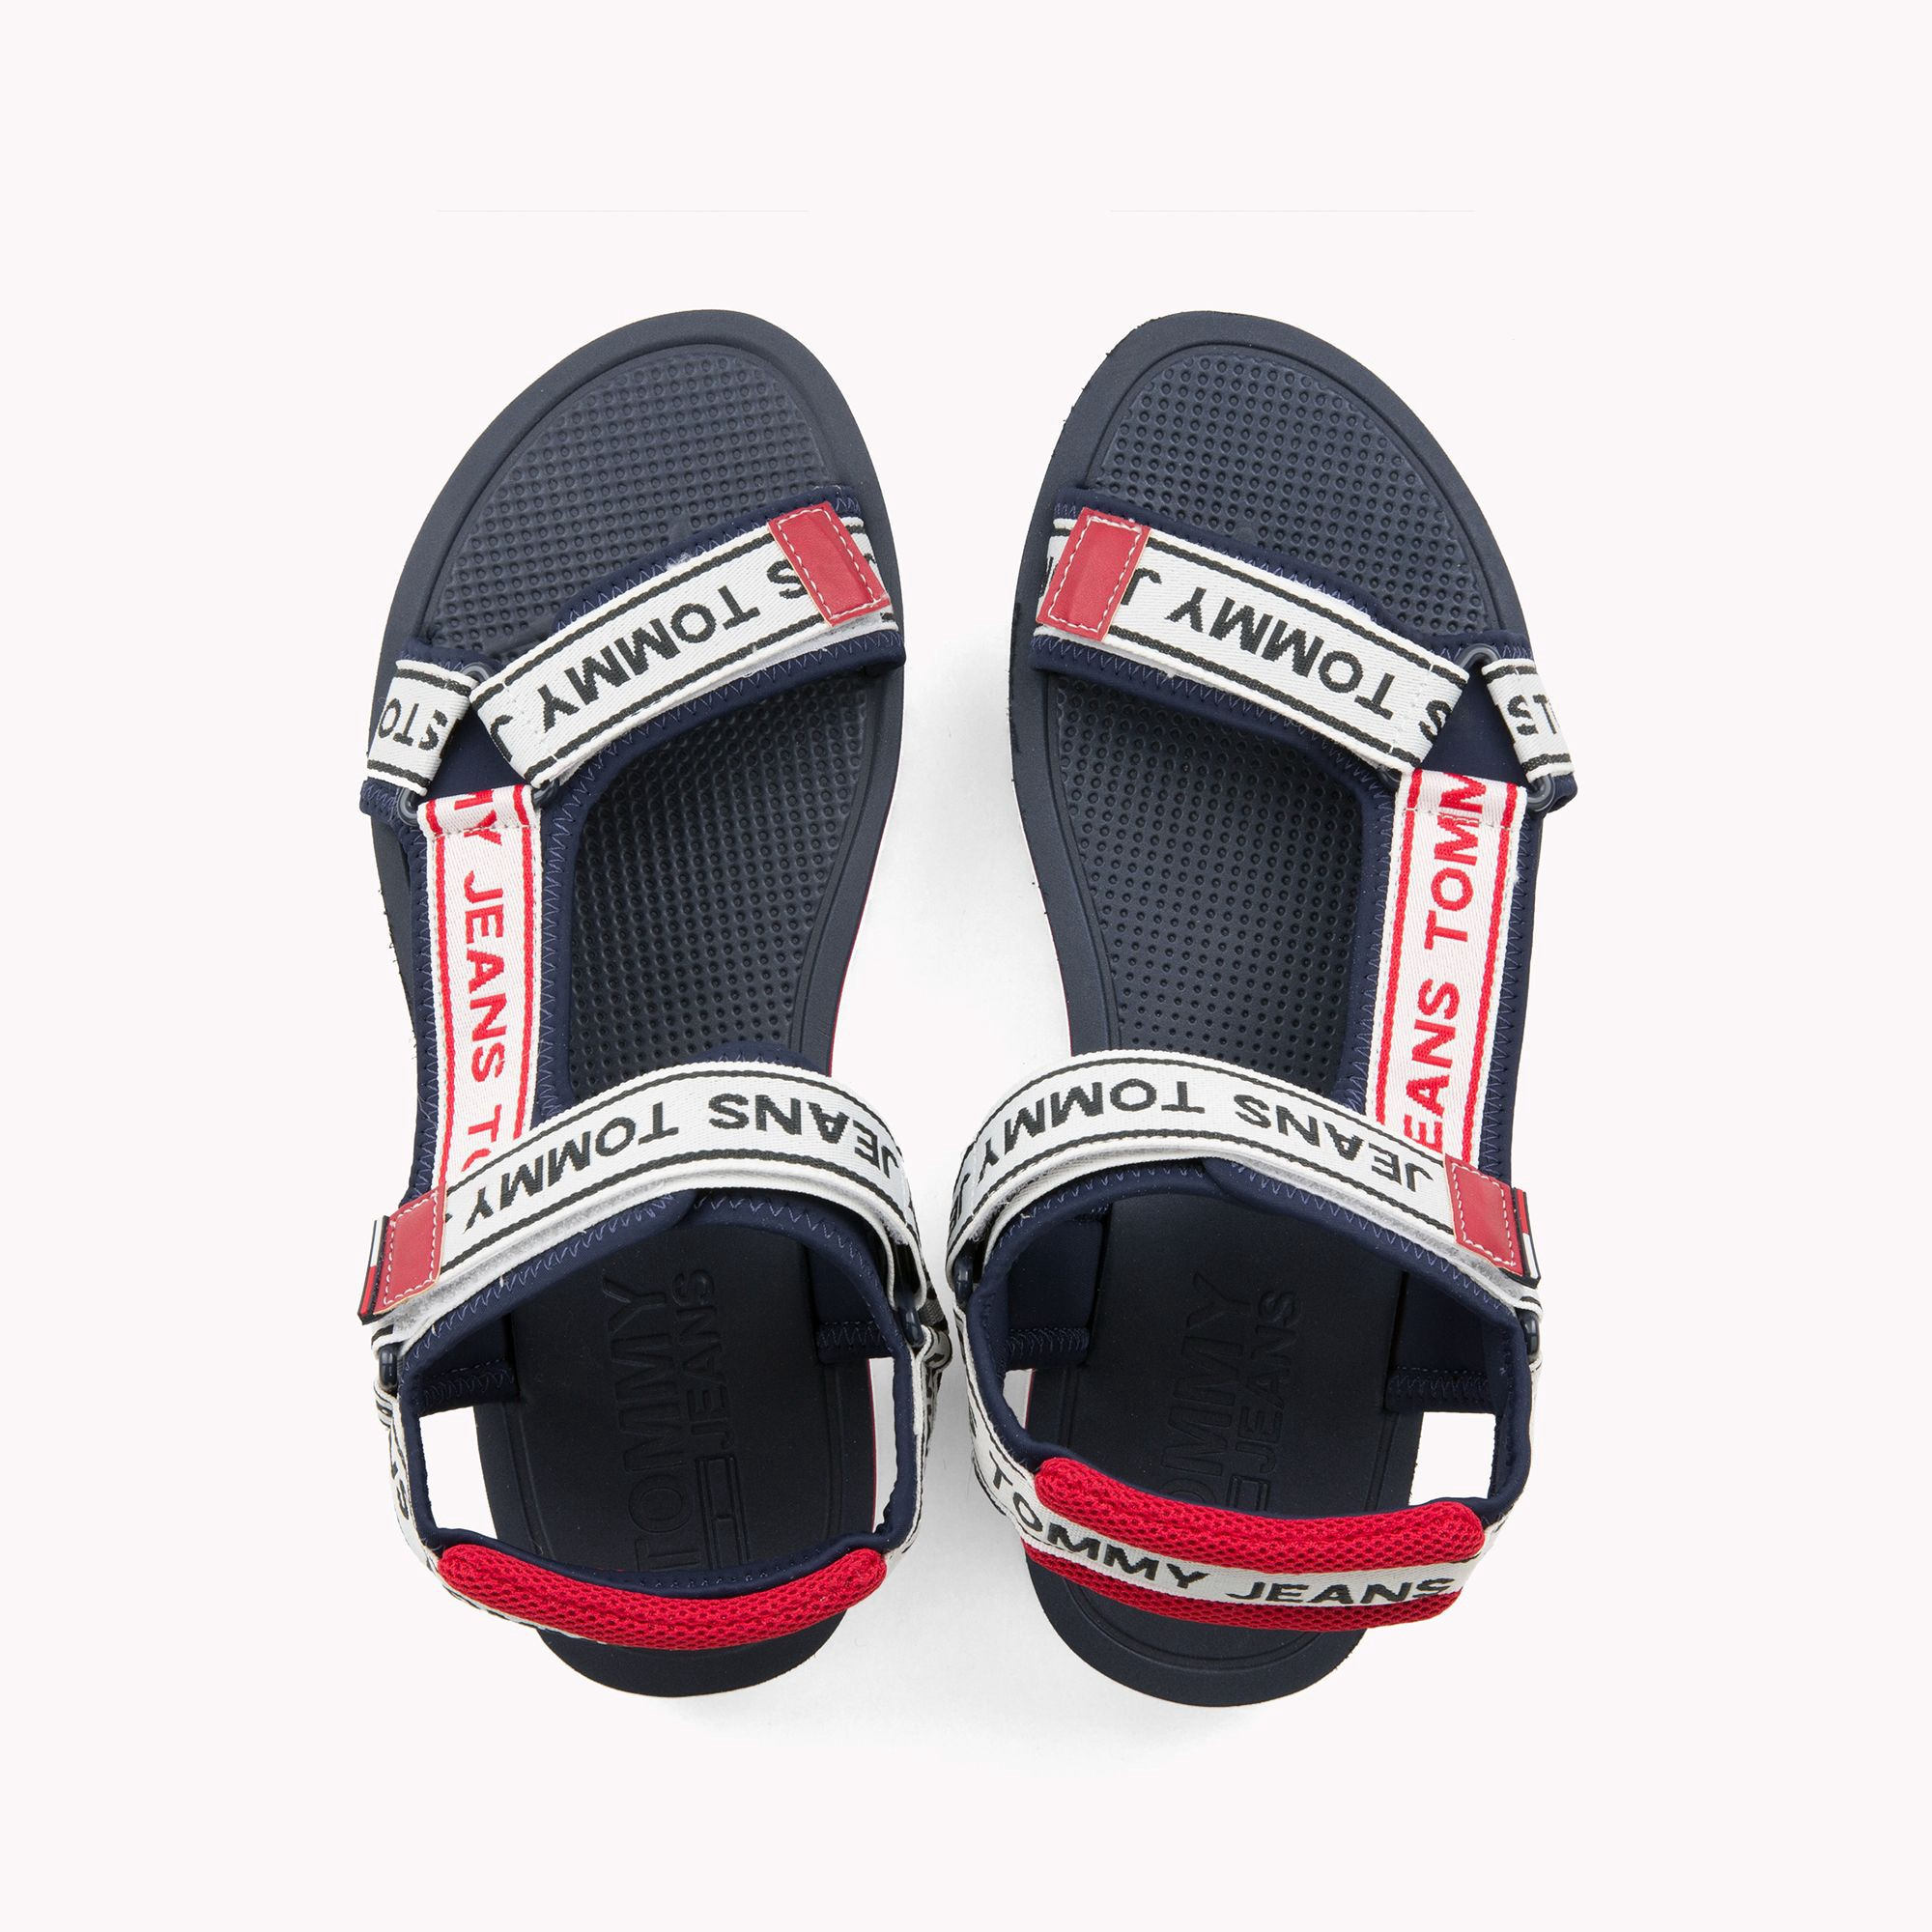 1e562c1cc49 Tommy Hilfiger Jeans Sport Sandal - 11.5 | Products | Tommy hilfiger ...